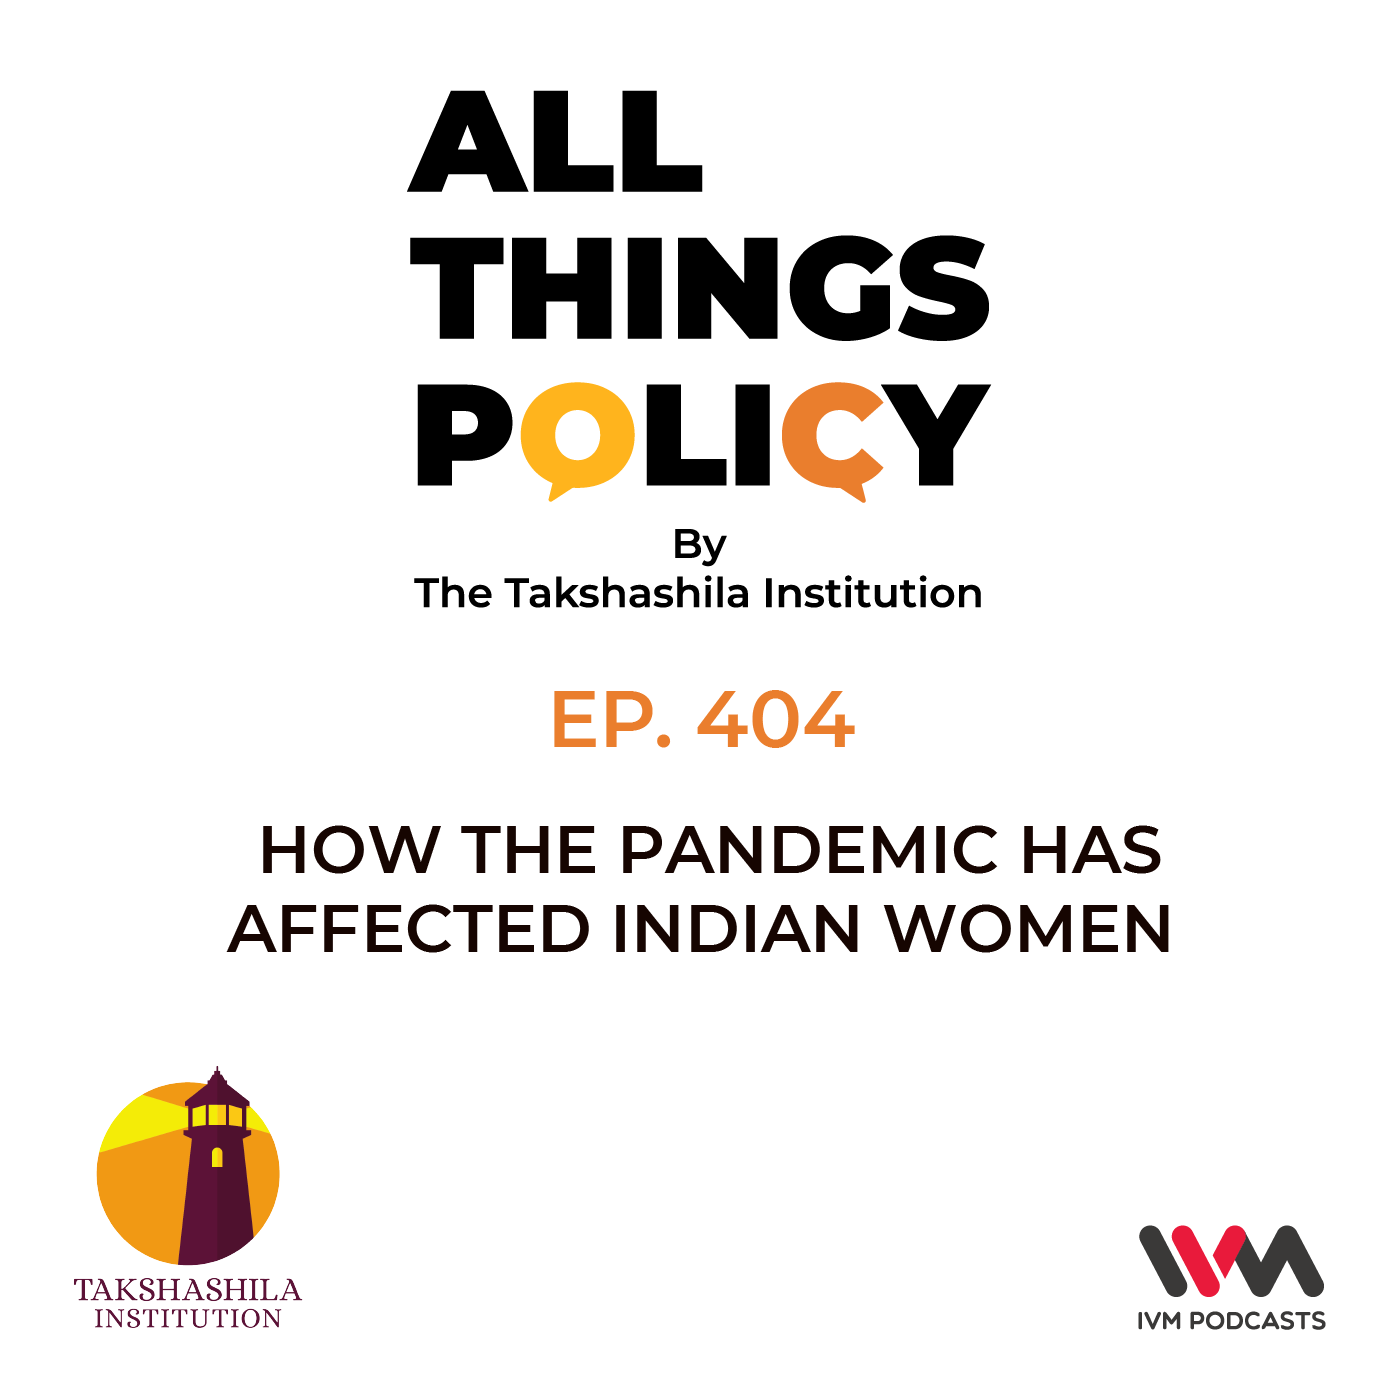 Ep. 404: How the Pandemic Has Affected Indian Women